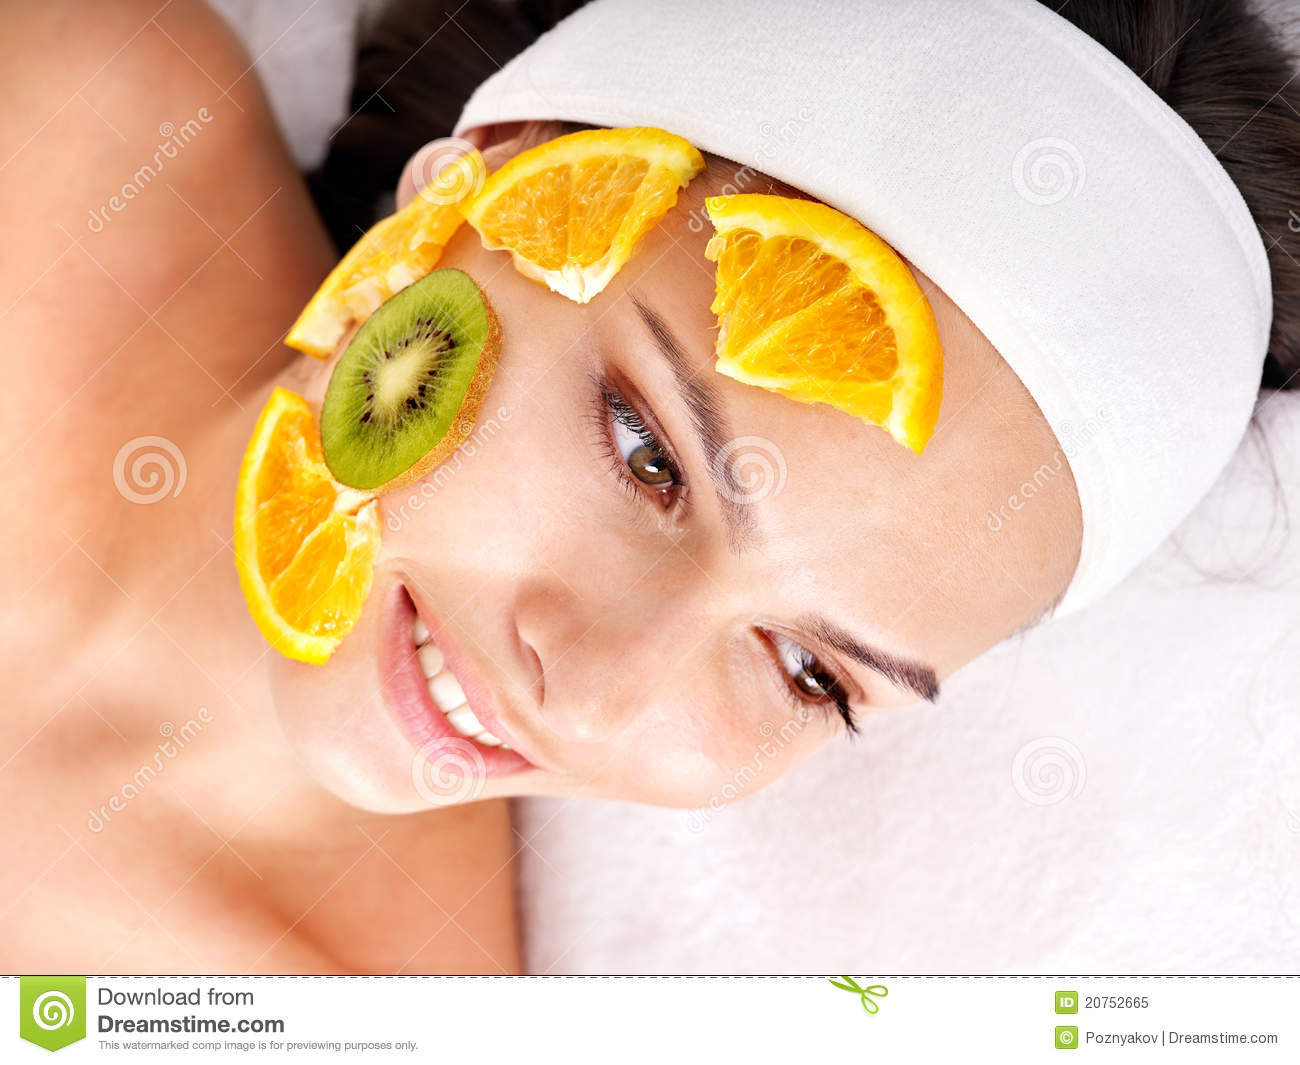 The Homemade fruit facial now